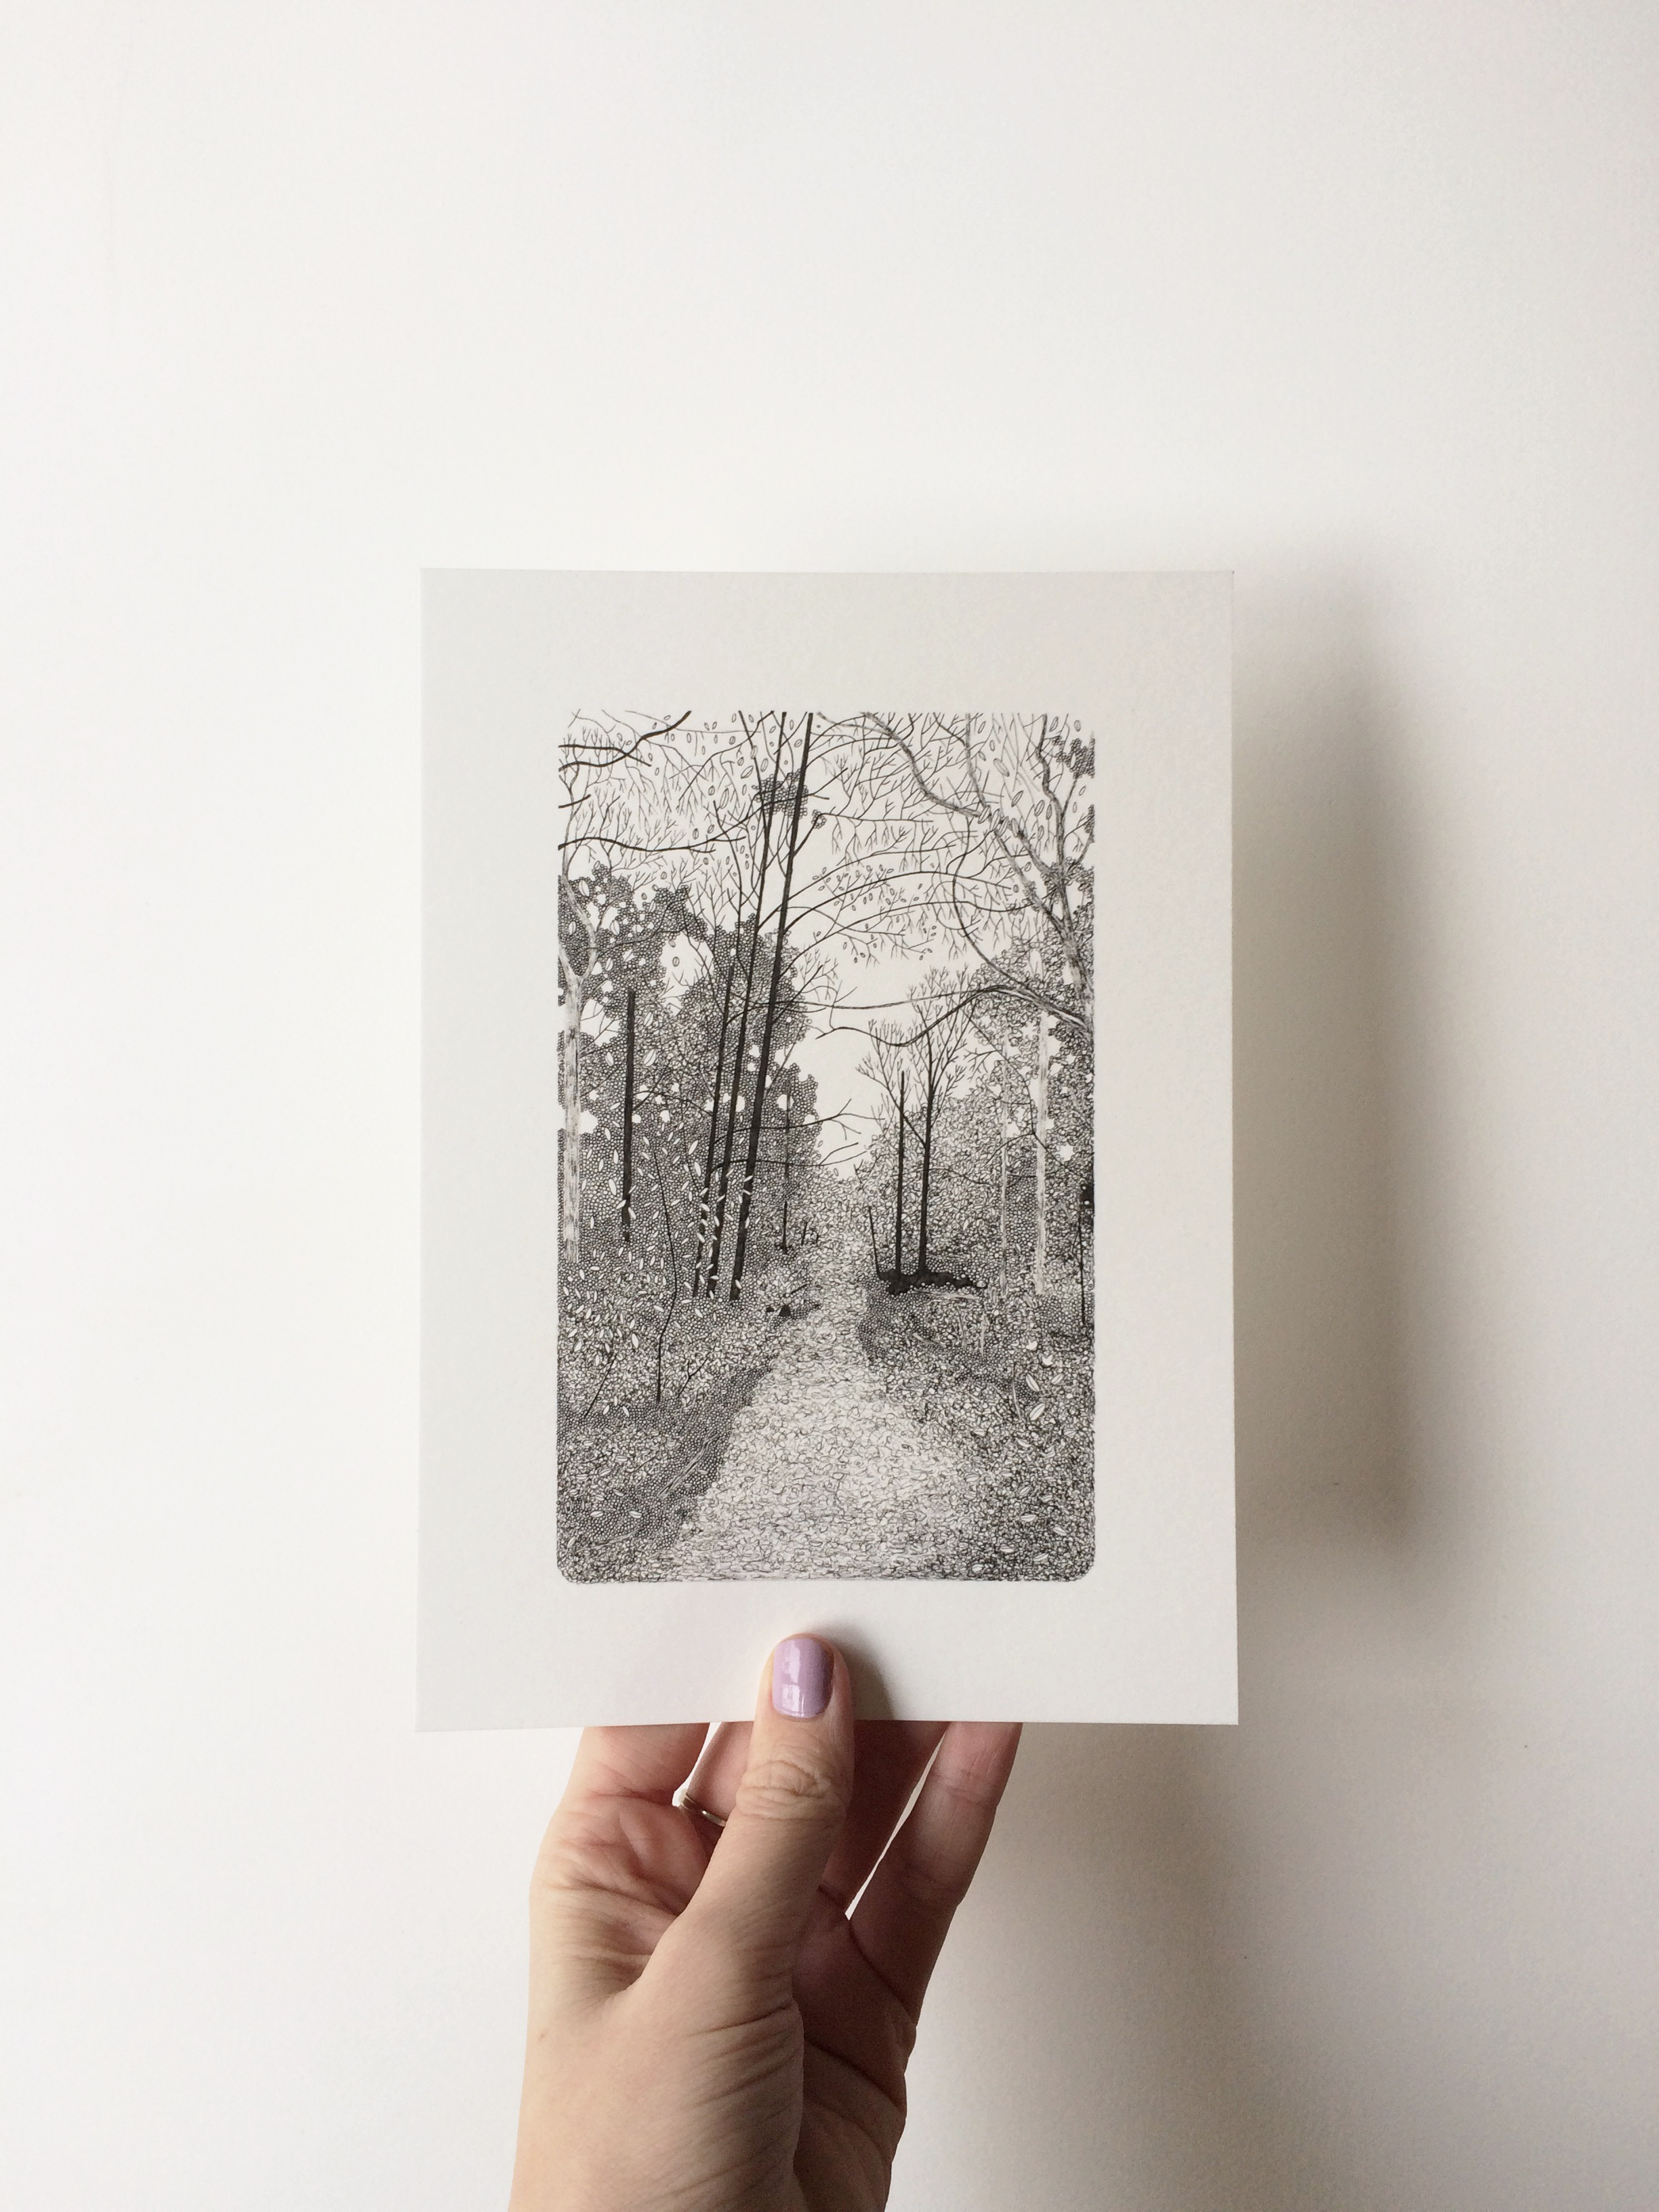 Selling A Drawing And Feeling That Buzz Of Excitement